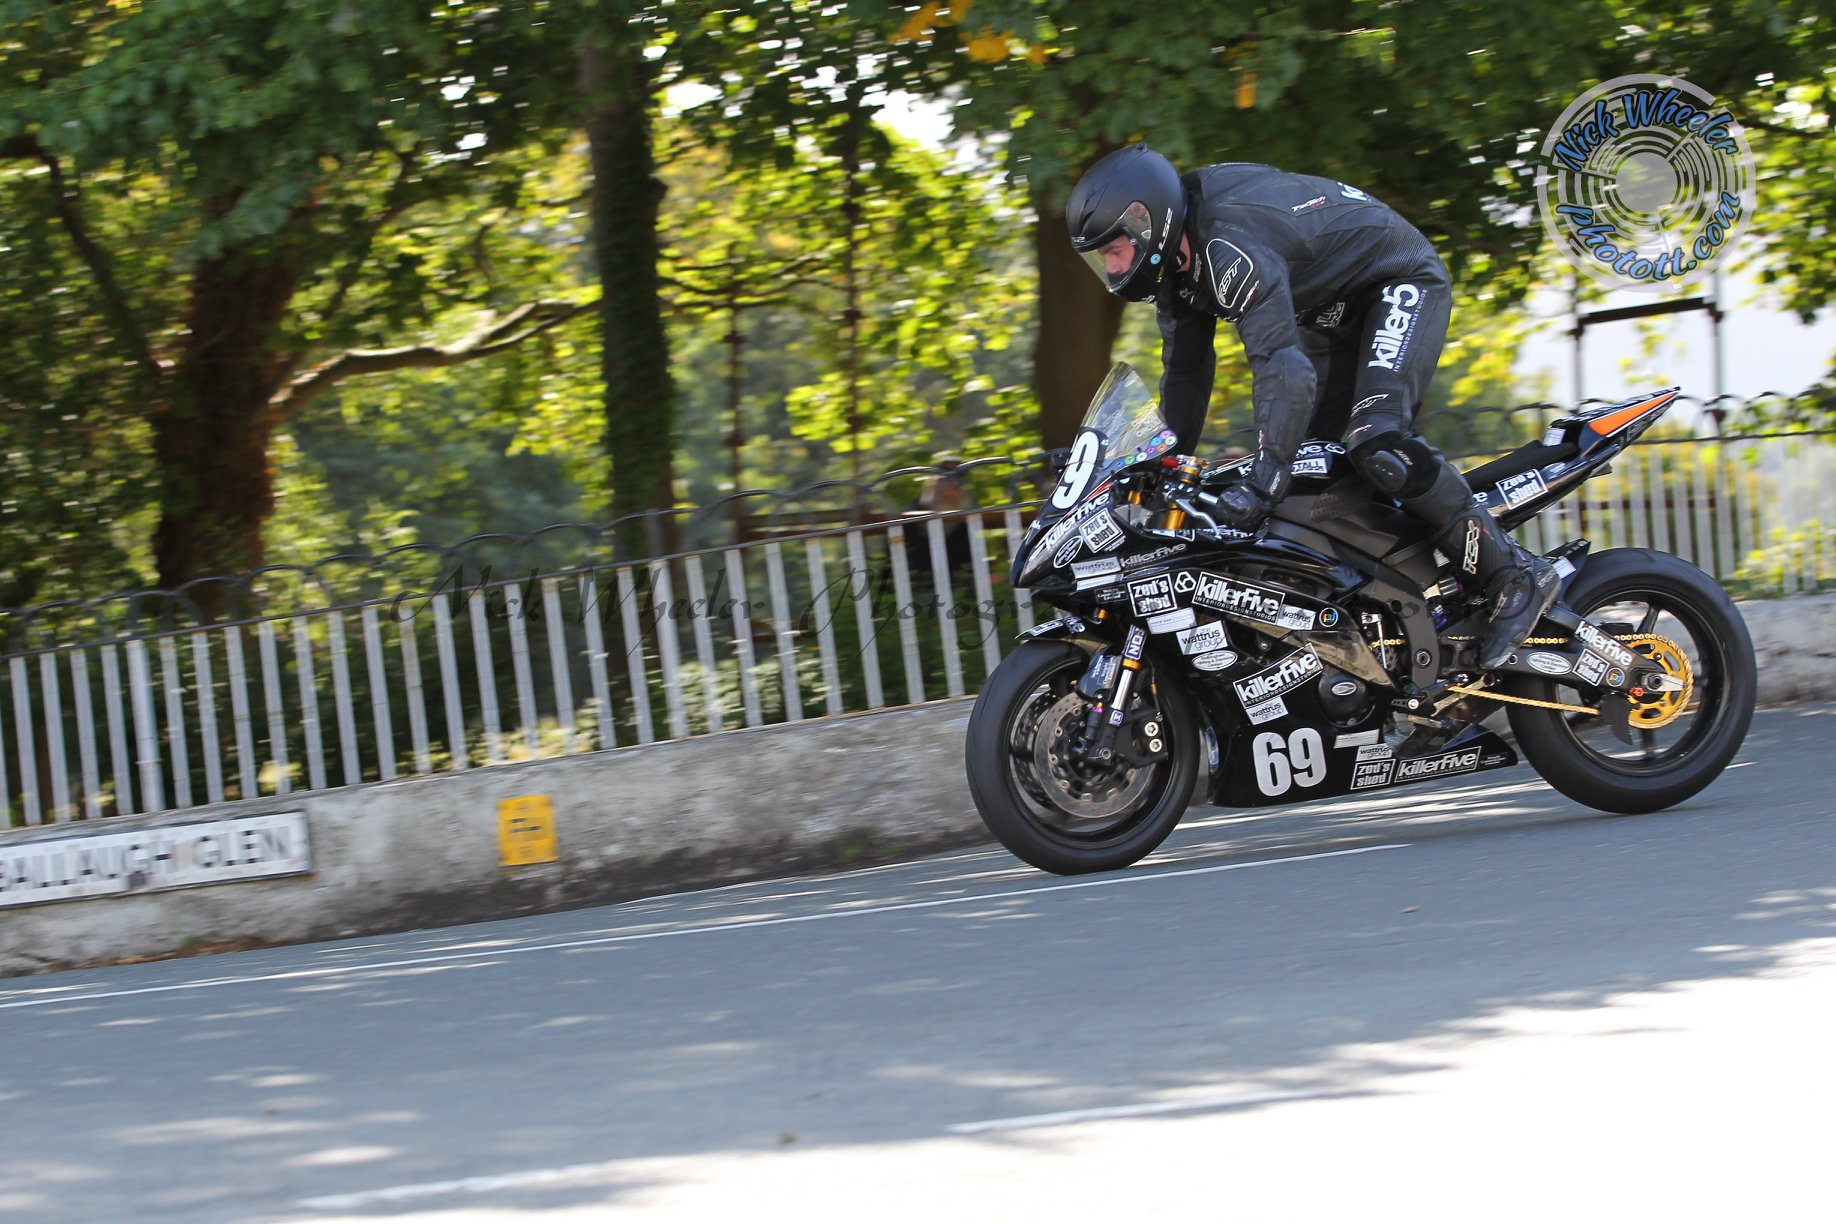 Stall Racing's Hall Issues Injury Recovery Update, Targets TT In 2020